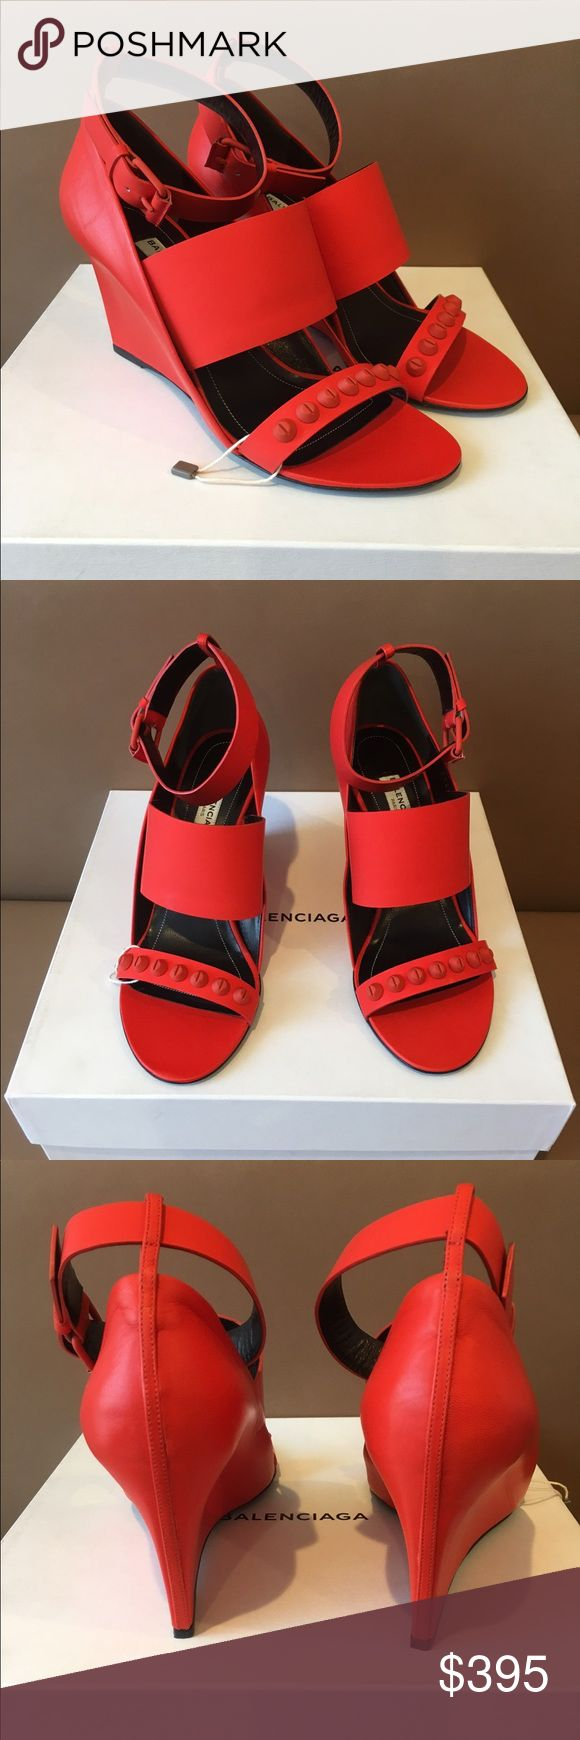 Balenciaga Orange Leather Studded Sandals 38--7.5 New , 100% authentic Balenciaga Orange leather studded wedge sandals . Size 38 . Should fit 7.5 or 8 US ! No issues . Come with an original box but a dust bag is missing . Amazing shoes ! Retail -$995 plus tax . Sorry , no trading -:(. Thanks ! Balenciaga Shoes Wedges